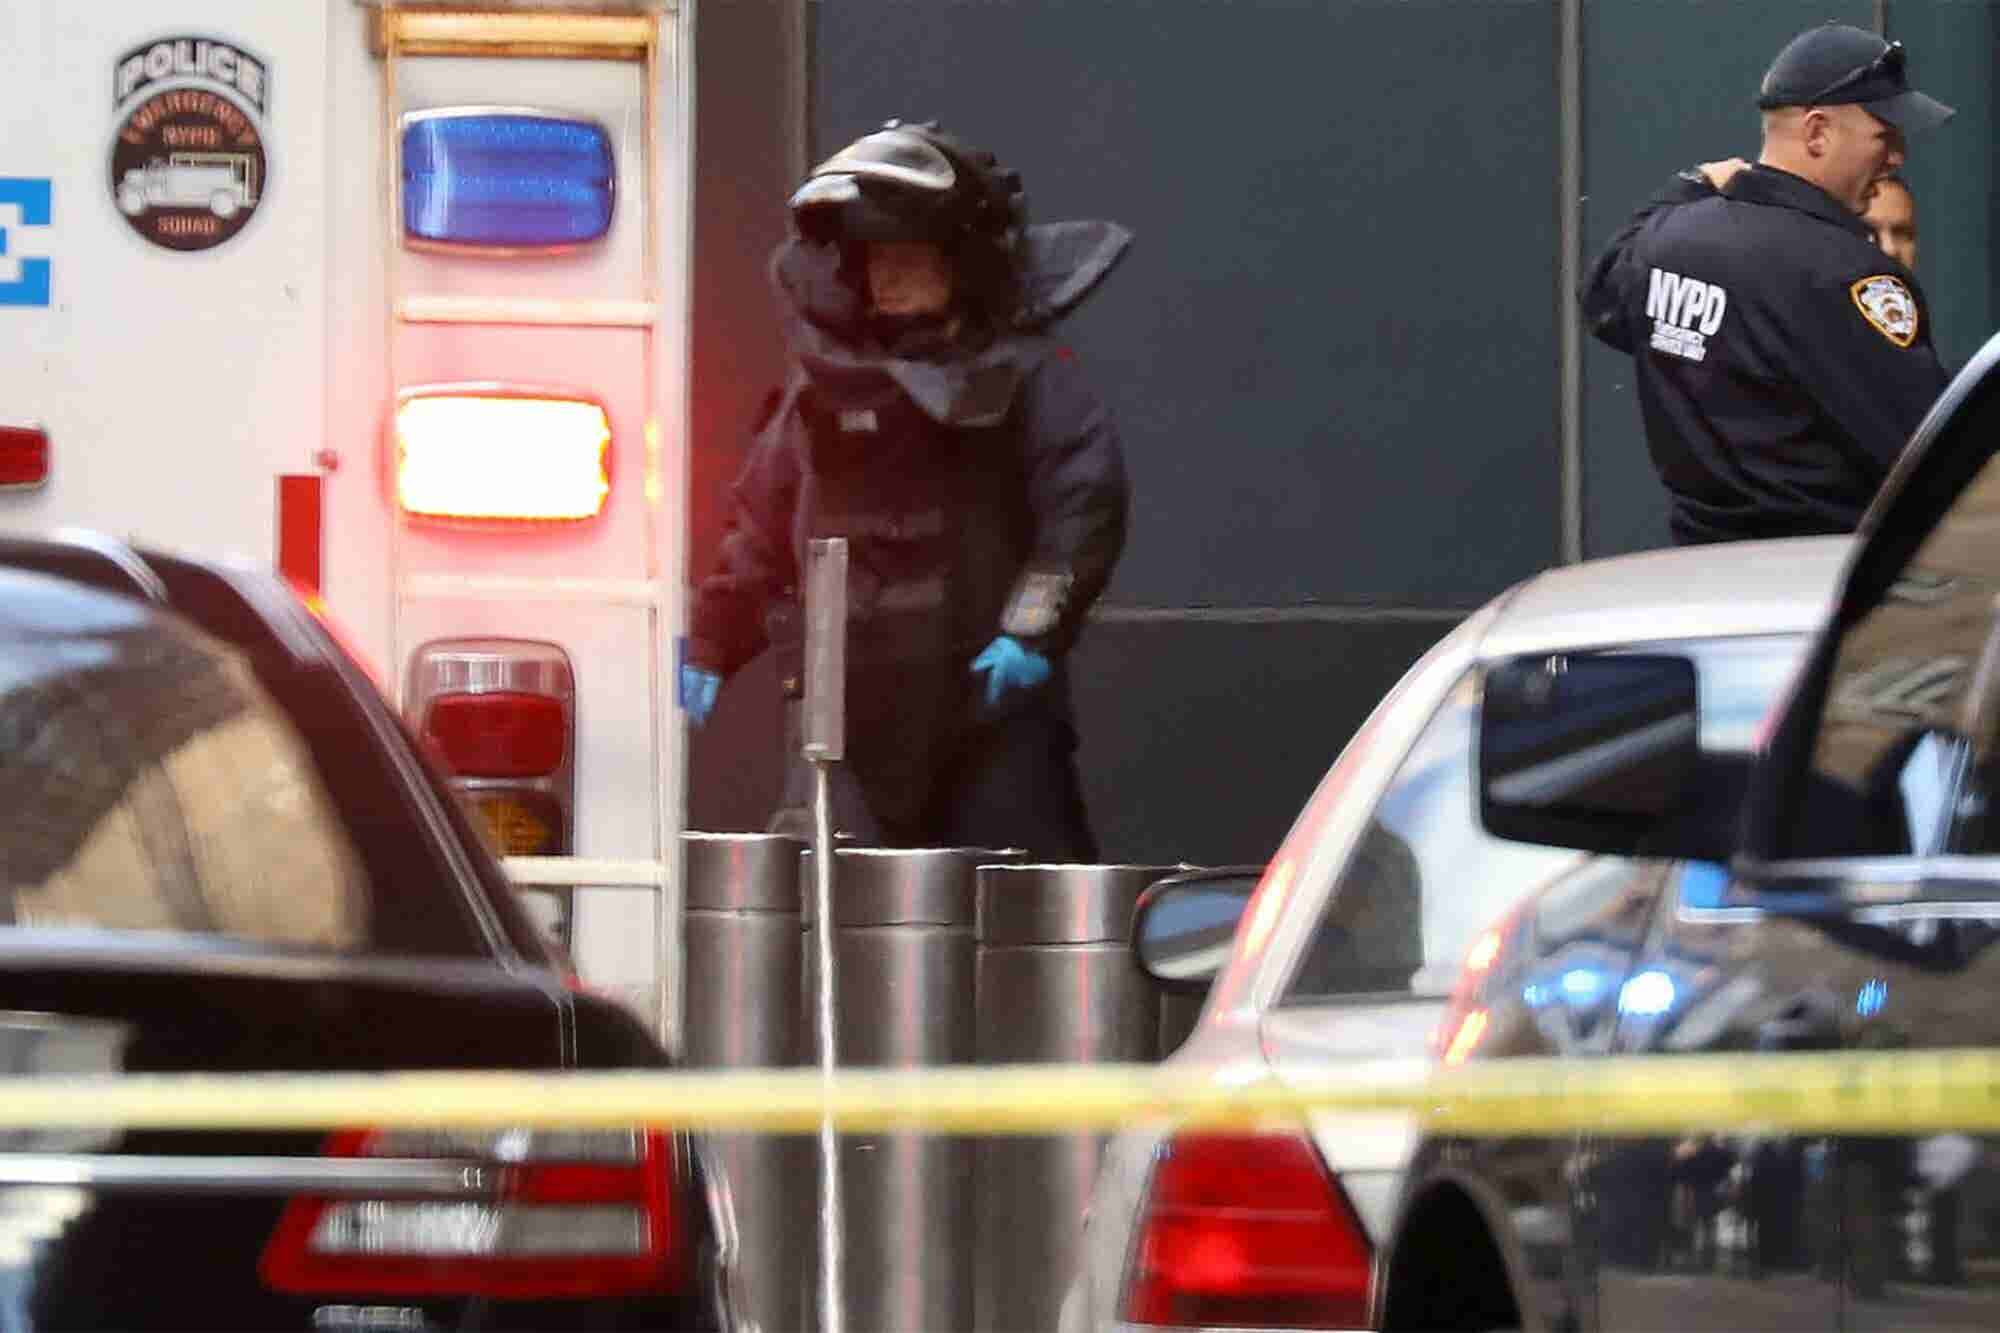 CNN Evacuates New York City Office Amid Reports of Suspicious Package After Explosive Devices Sent to Clinton and Obama Homes